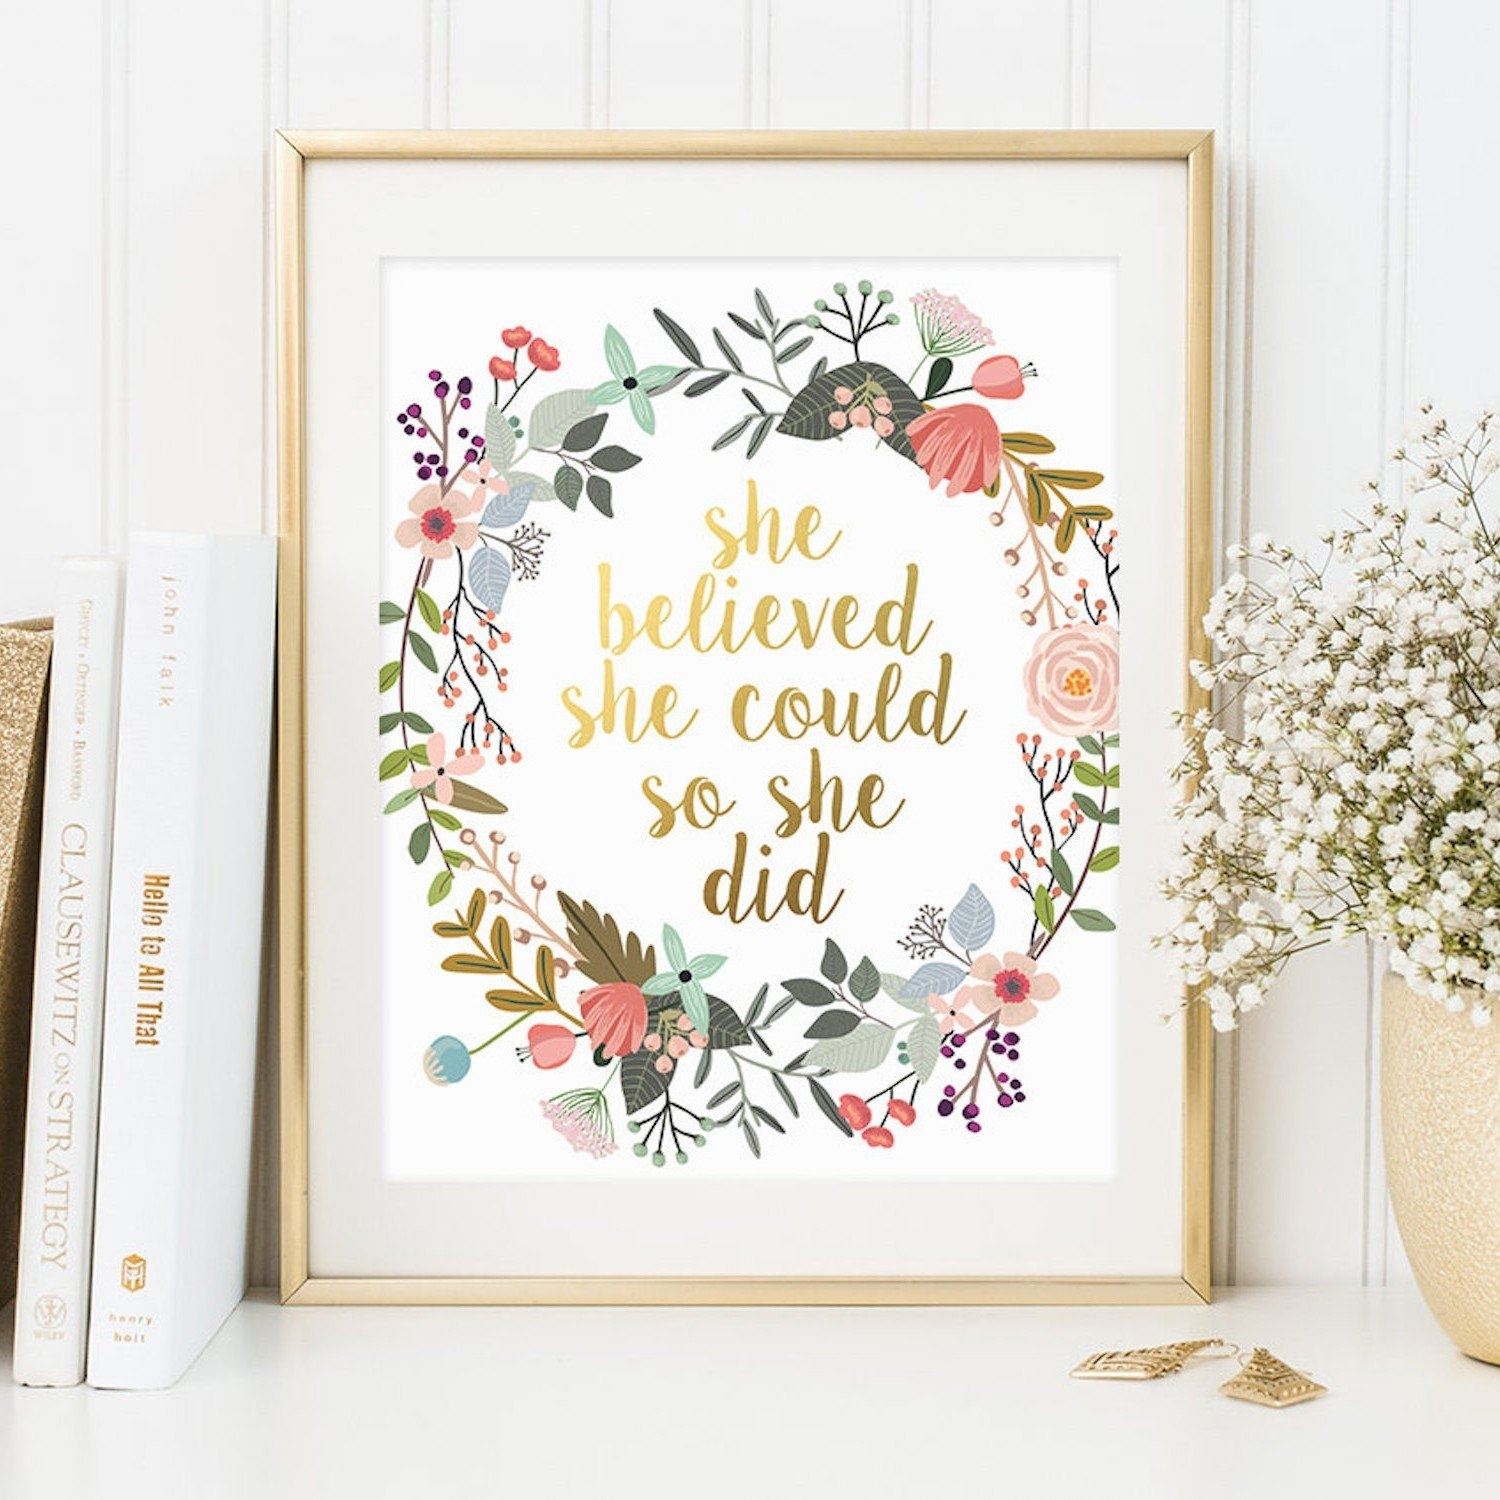 Inspirational Quote Wall Art | Popsugar Moms With Regard To Most Current Quote Wall Art (View 9 of 20)